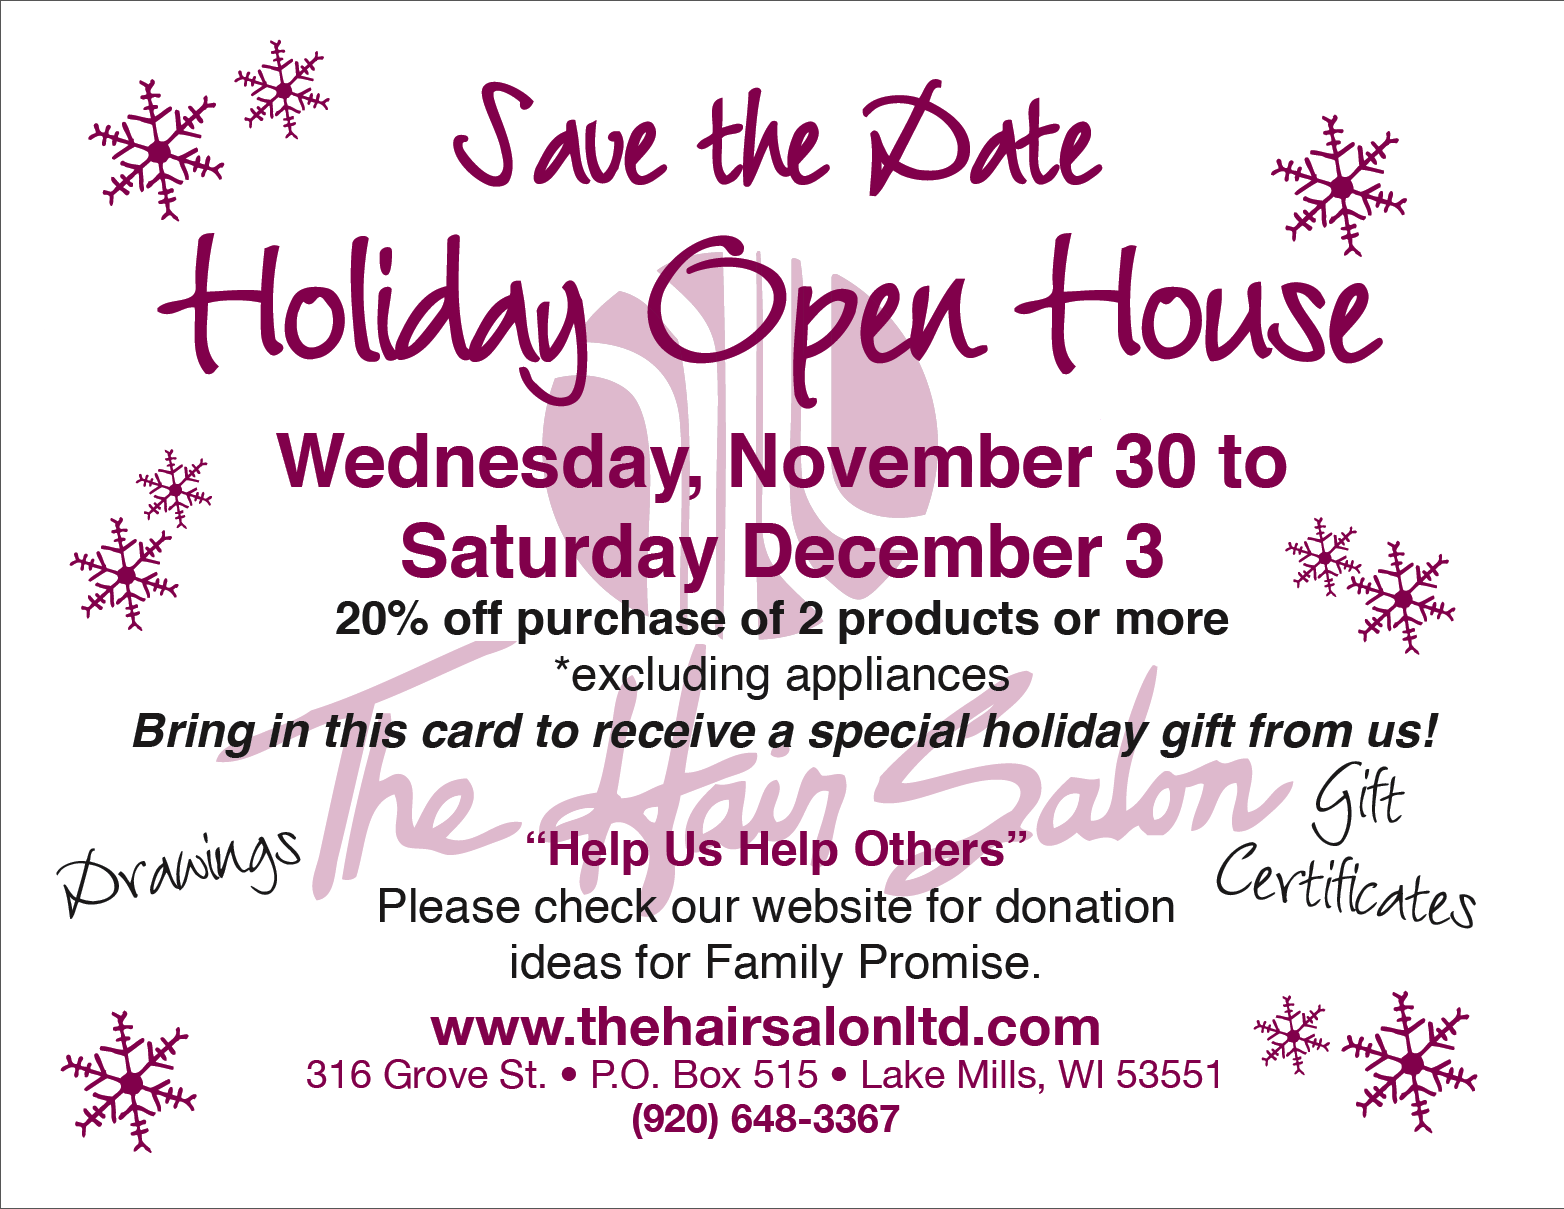 hair-salon-holiday-openhouse - The Hair Salon, Ltd.